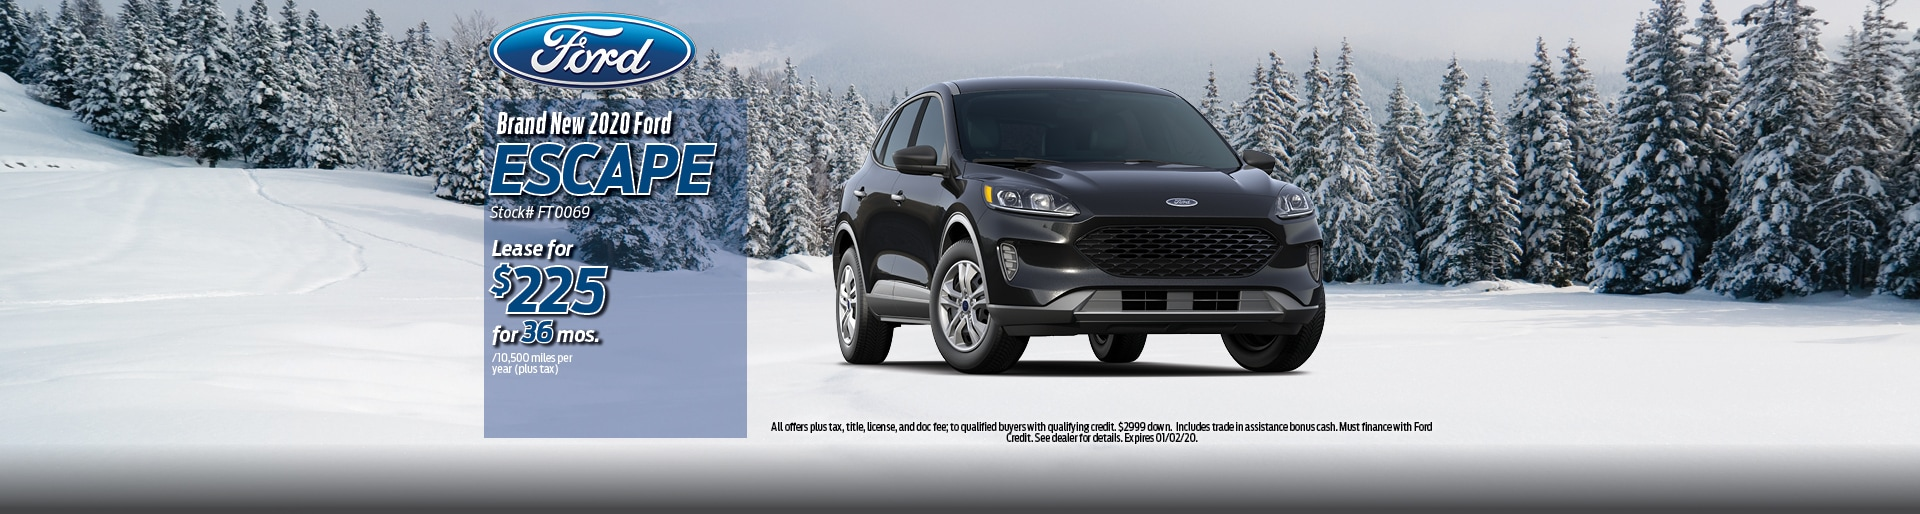 2019 Ford Escape Lease Deal